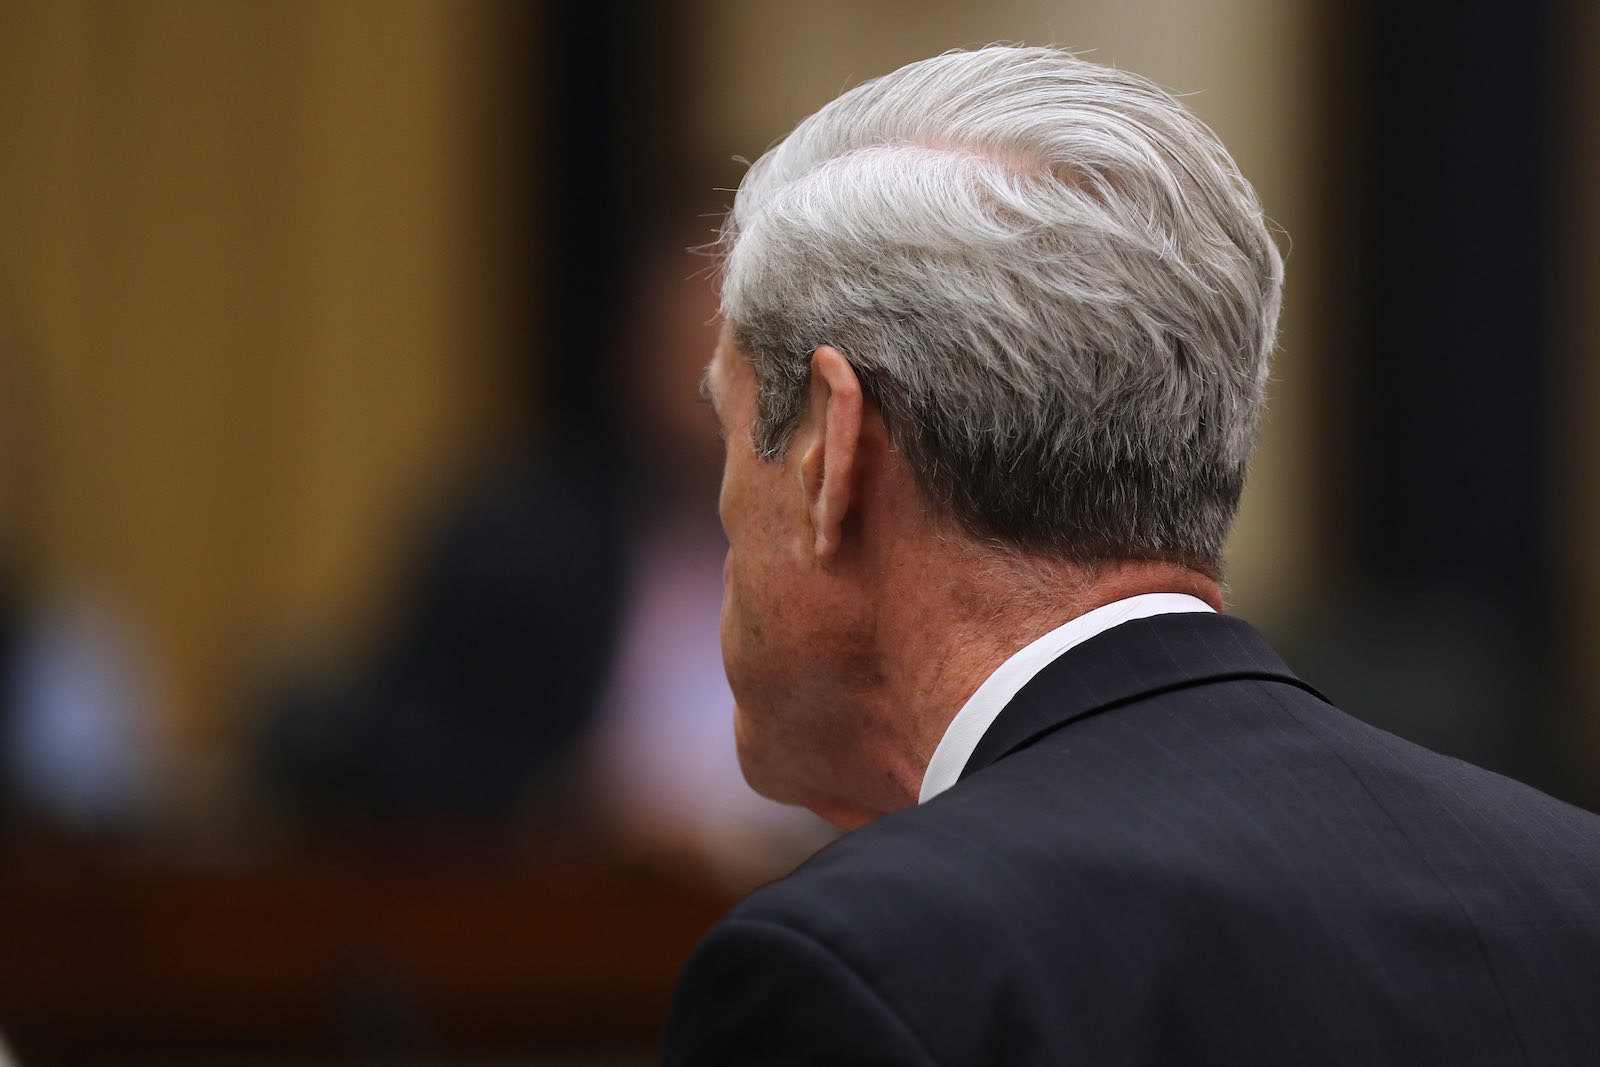 Former Special Counsel Robert Mueller testified this week before the House Intelligence Committee about his report on Russian interference in the 2016 presidential election (Photo: Chip Somodevilla/Getty)